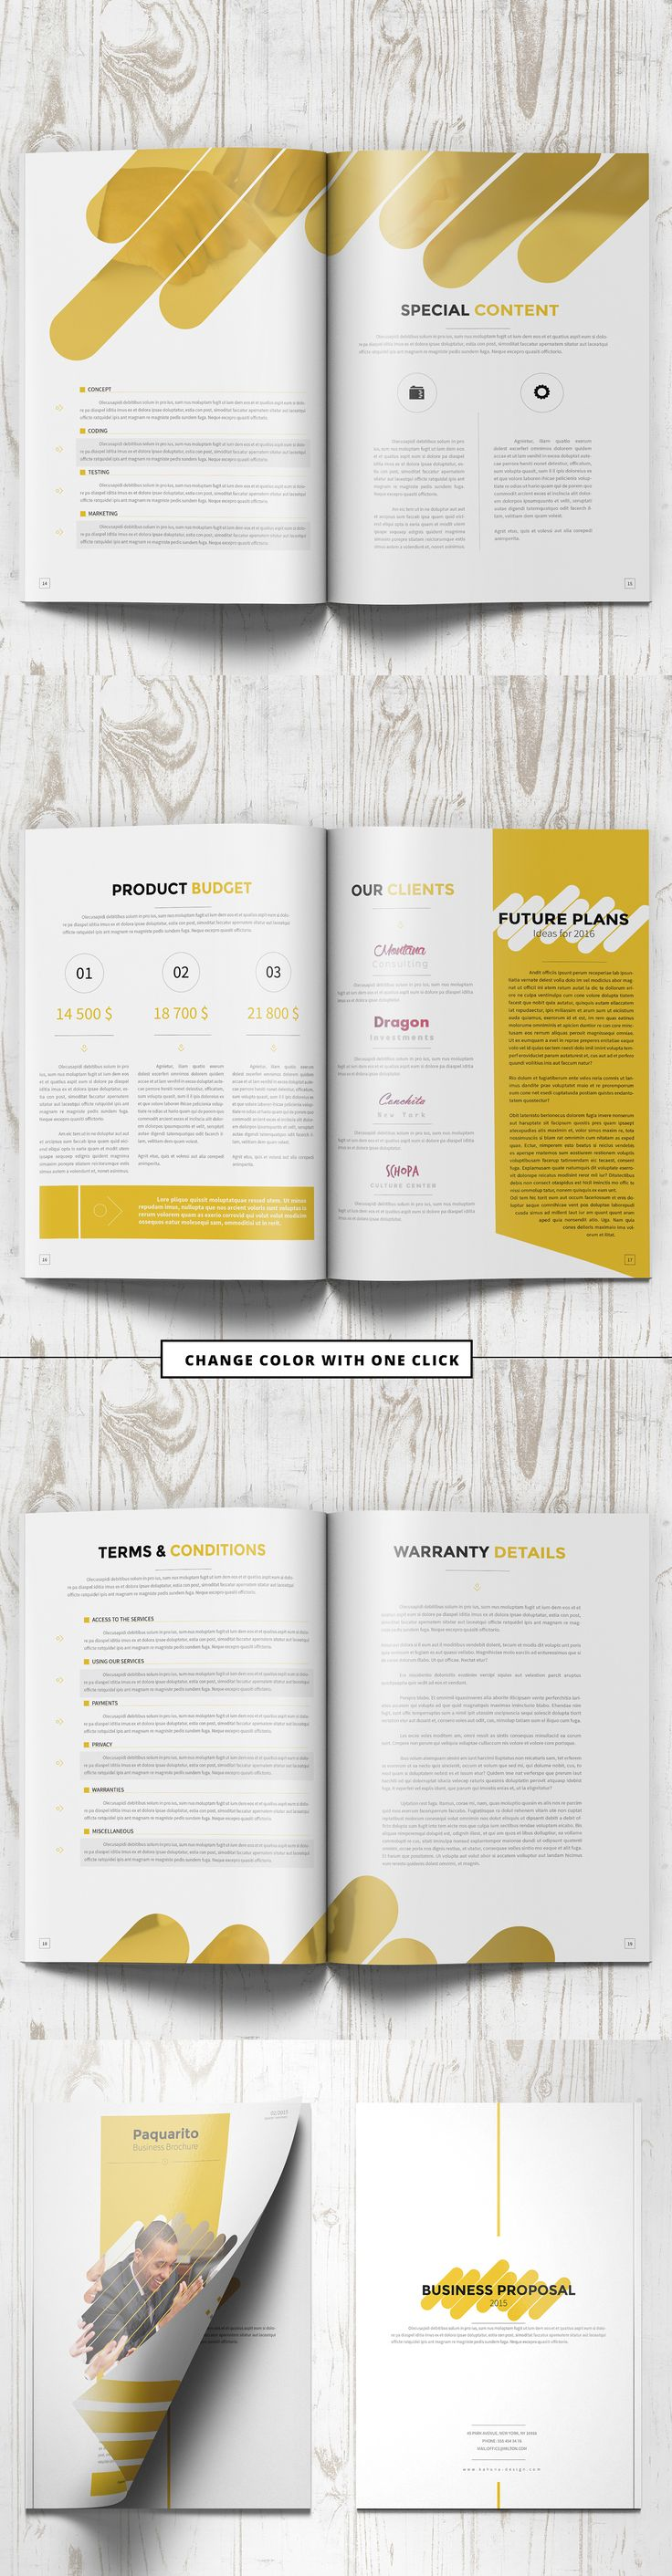 Business Proposal Catalog / Brochure Template 2 sizes: A4 and US Letter Adobe InDesign Projects, 4 InDesign files (CS6 + CS4), You can create your own brochure color with few clicks – instruction included, 20 pages, CMYK – 300dpi, Print Ready. Pro…